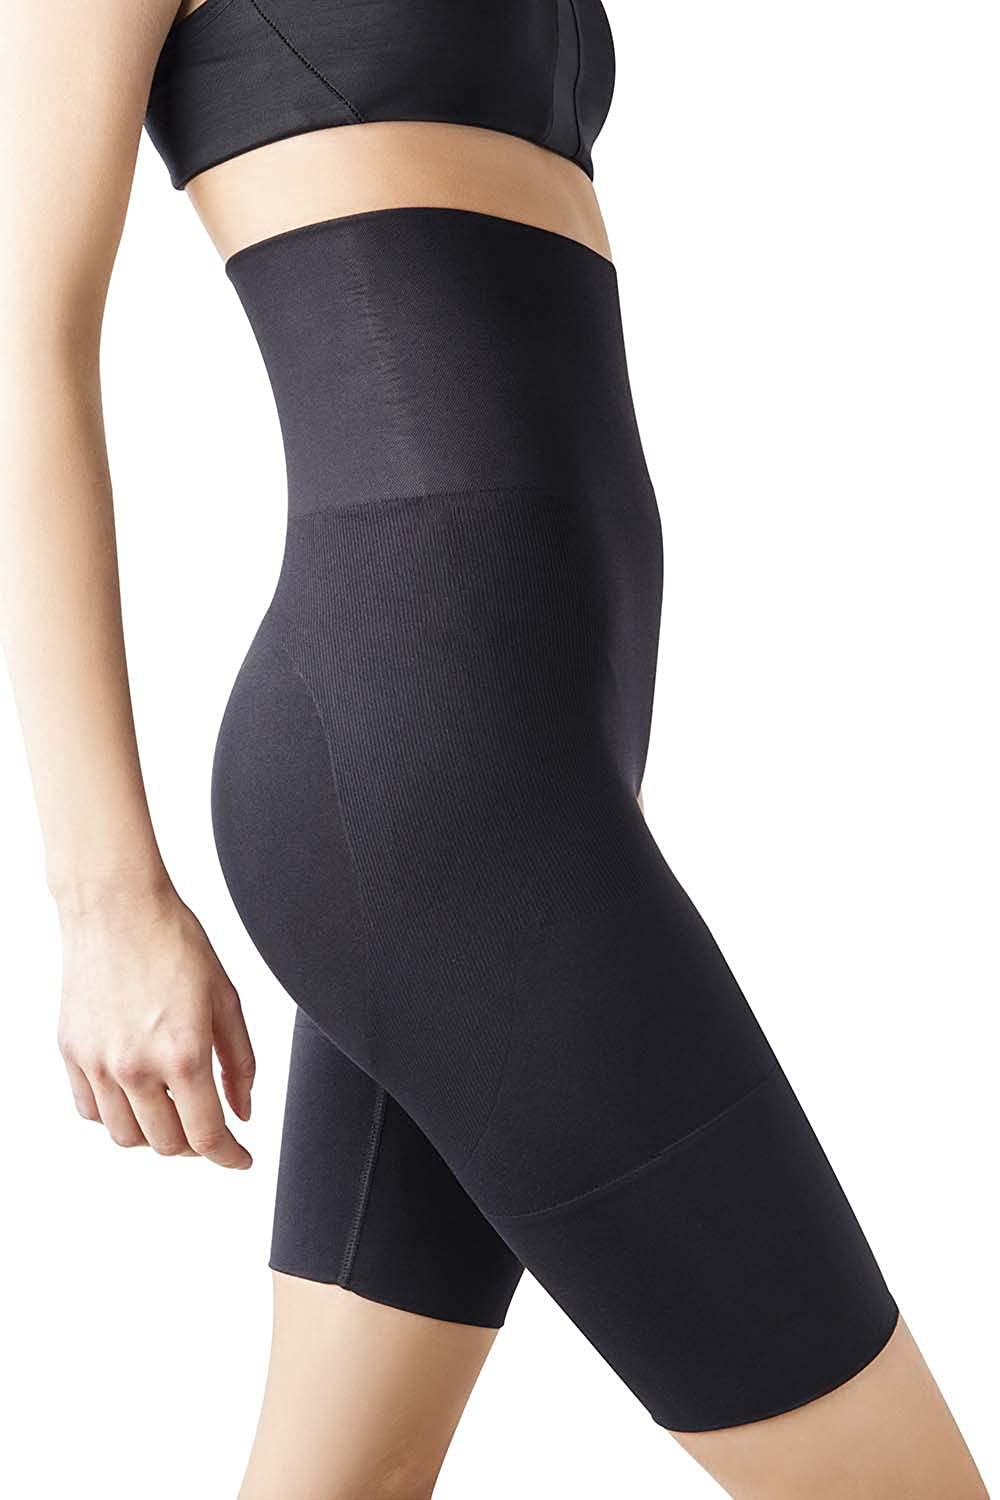 MD Shapewear Yoga Pant And Sports Leggings For Women Tummy Hips And Thighs Body Shaper High Waist